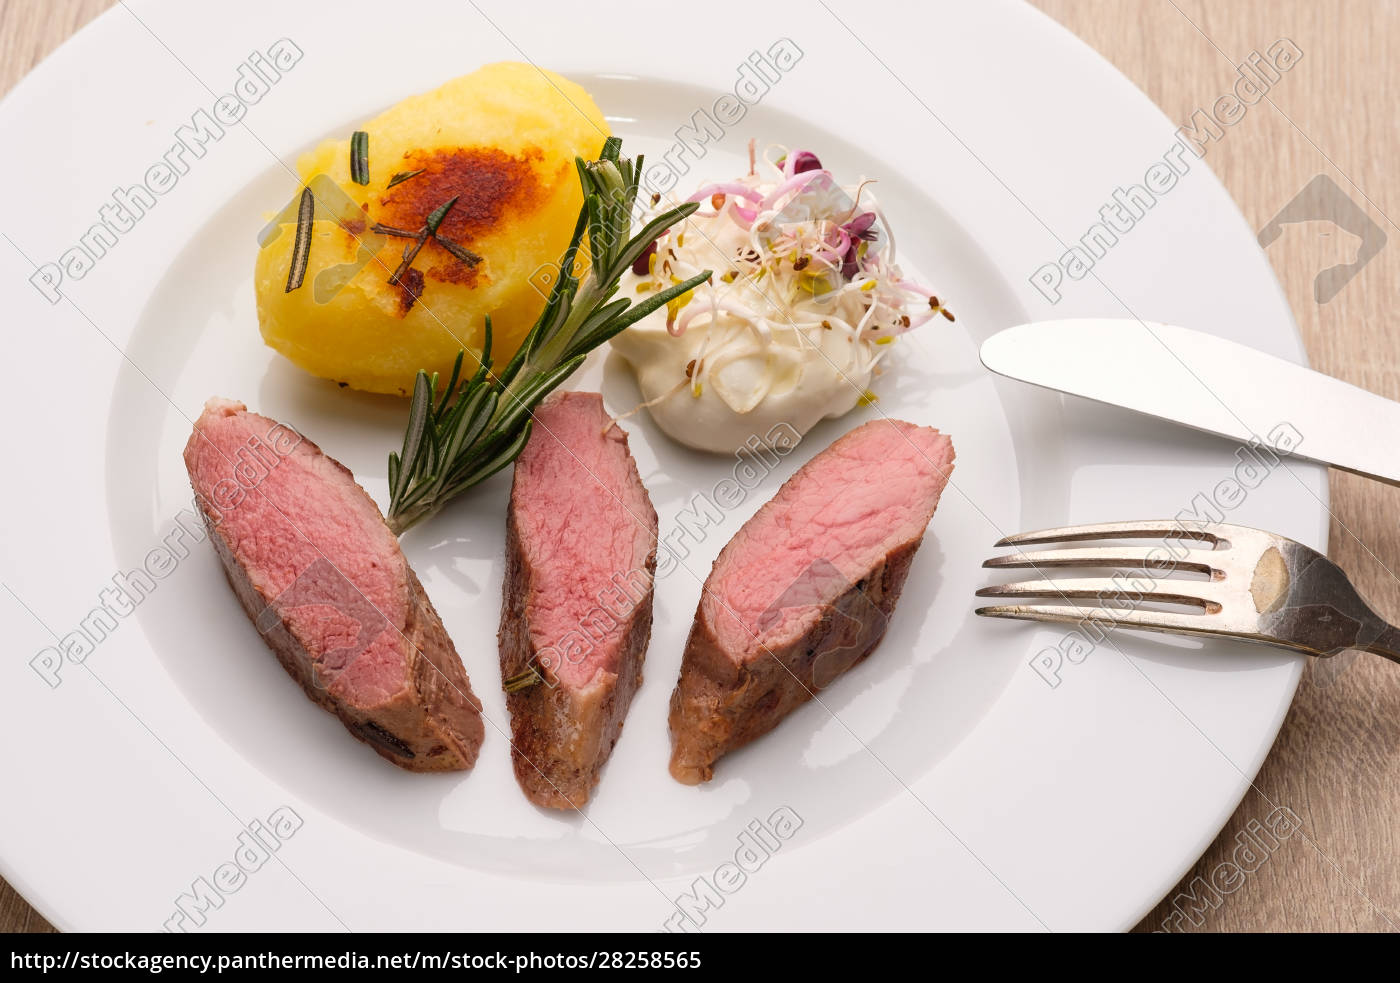 meat, saddle, of, lamb, with, fried - 28258565